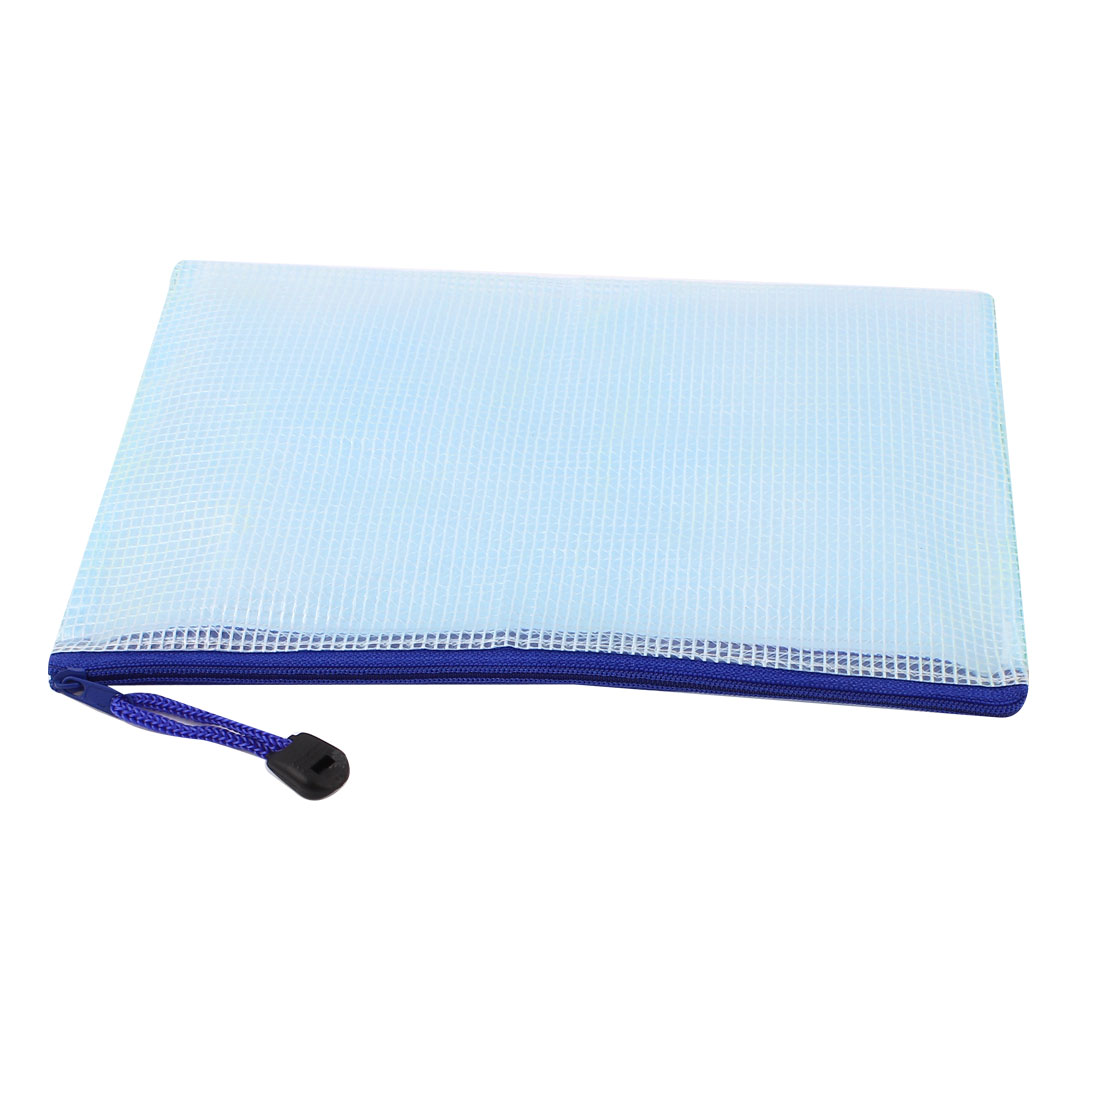 Zippered PVC Mesh Checkbook ID Cosmetic A5 Document File Bag Holder Pouch Light Blue